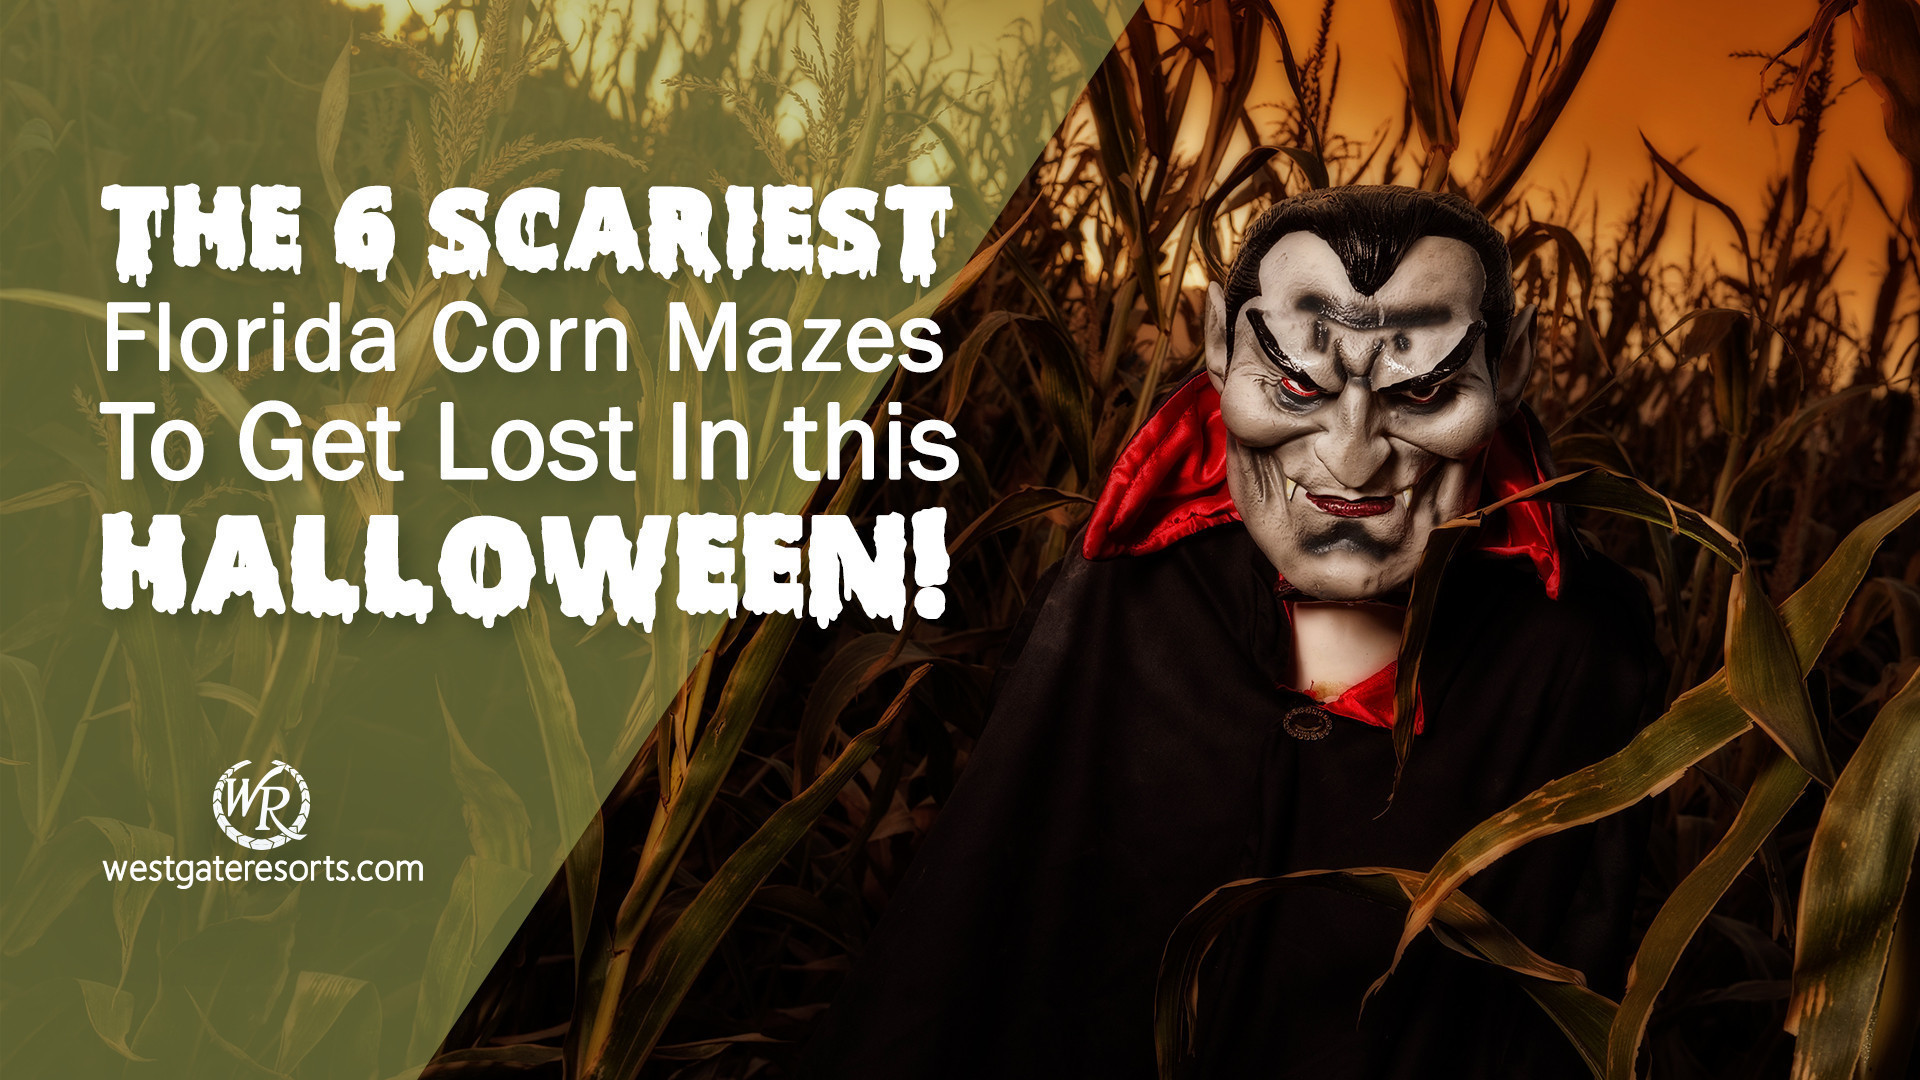 The 6 Scariest Florida Corn Mazes To Get Lost In This Halloween! | Westgate Resorts